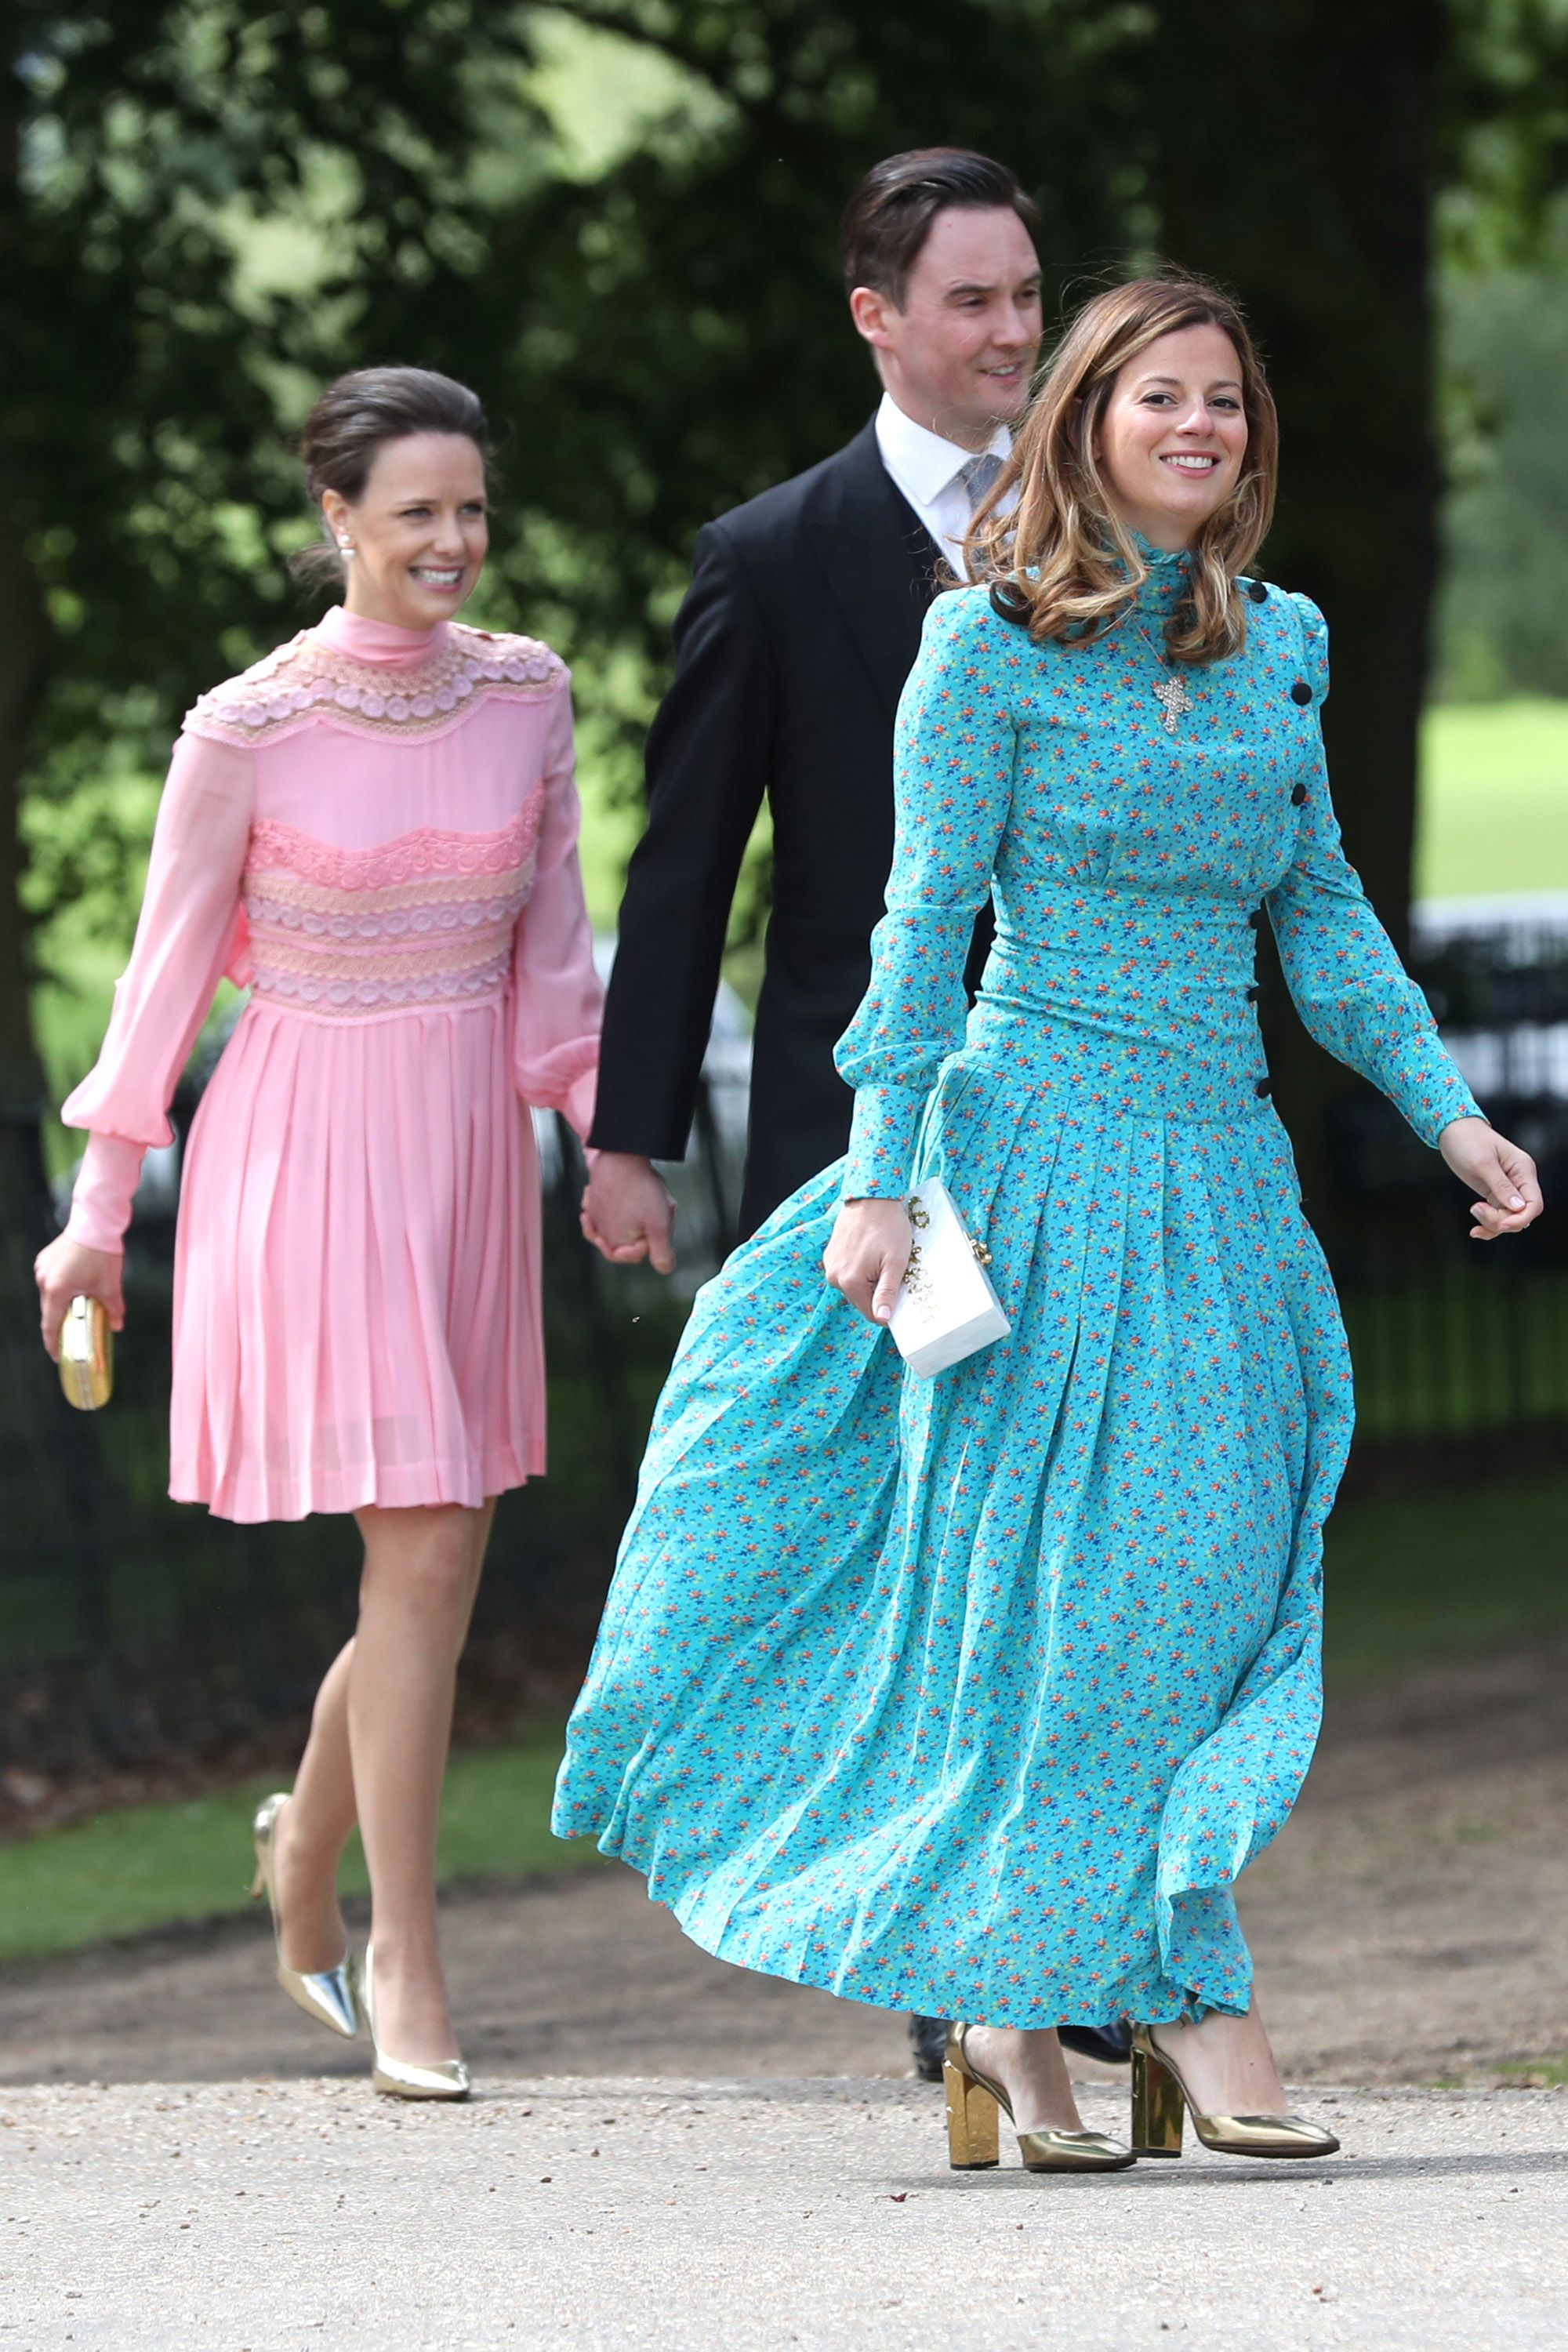 Best Dressed at Pippa Middleton\'s Wedding - Pippa Middleton Wedding ...